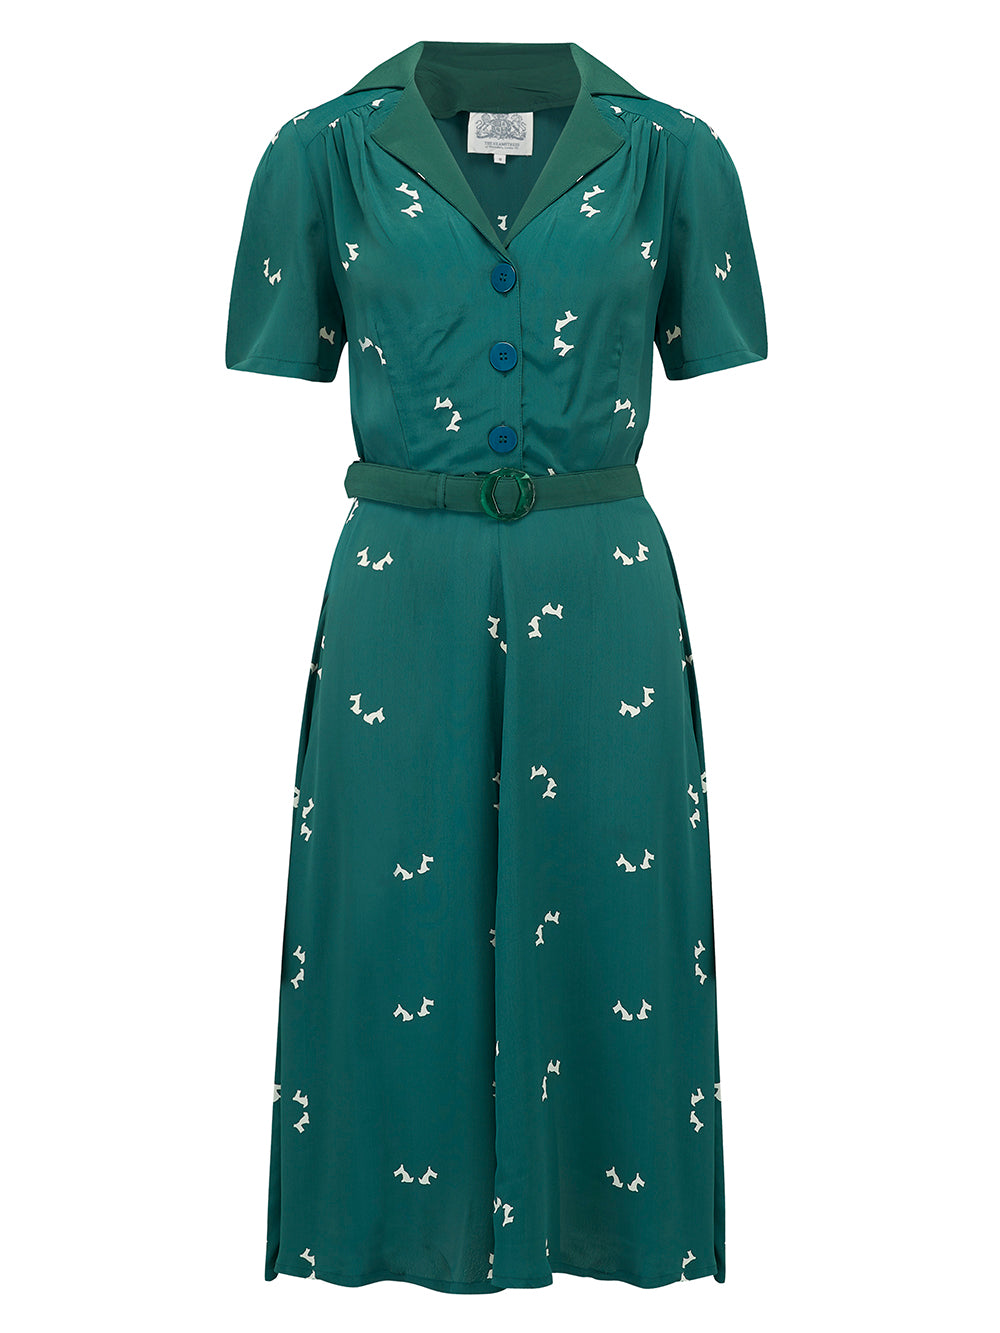 """Lisa"" Tea Dress in Green Doggy Print with Statement Collar from The Seamstress Of Bloomsbury, Authentic 1940s Vintage Style at its Best"